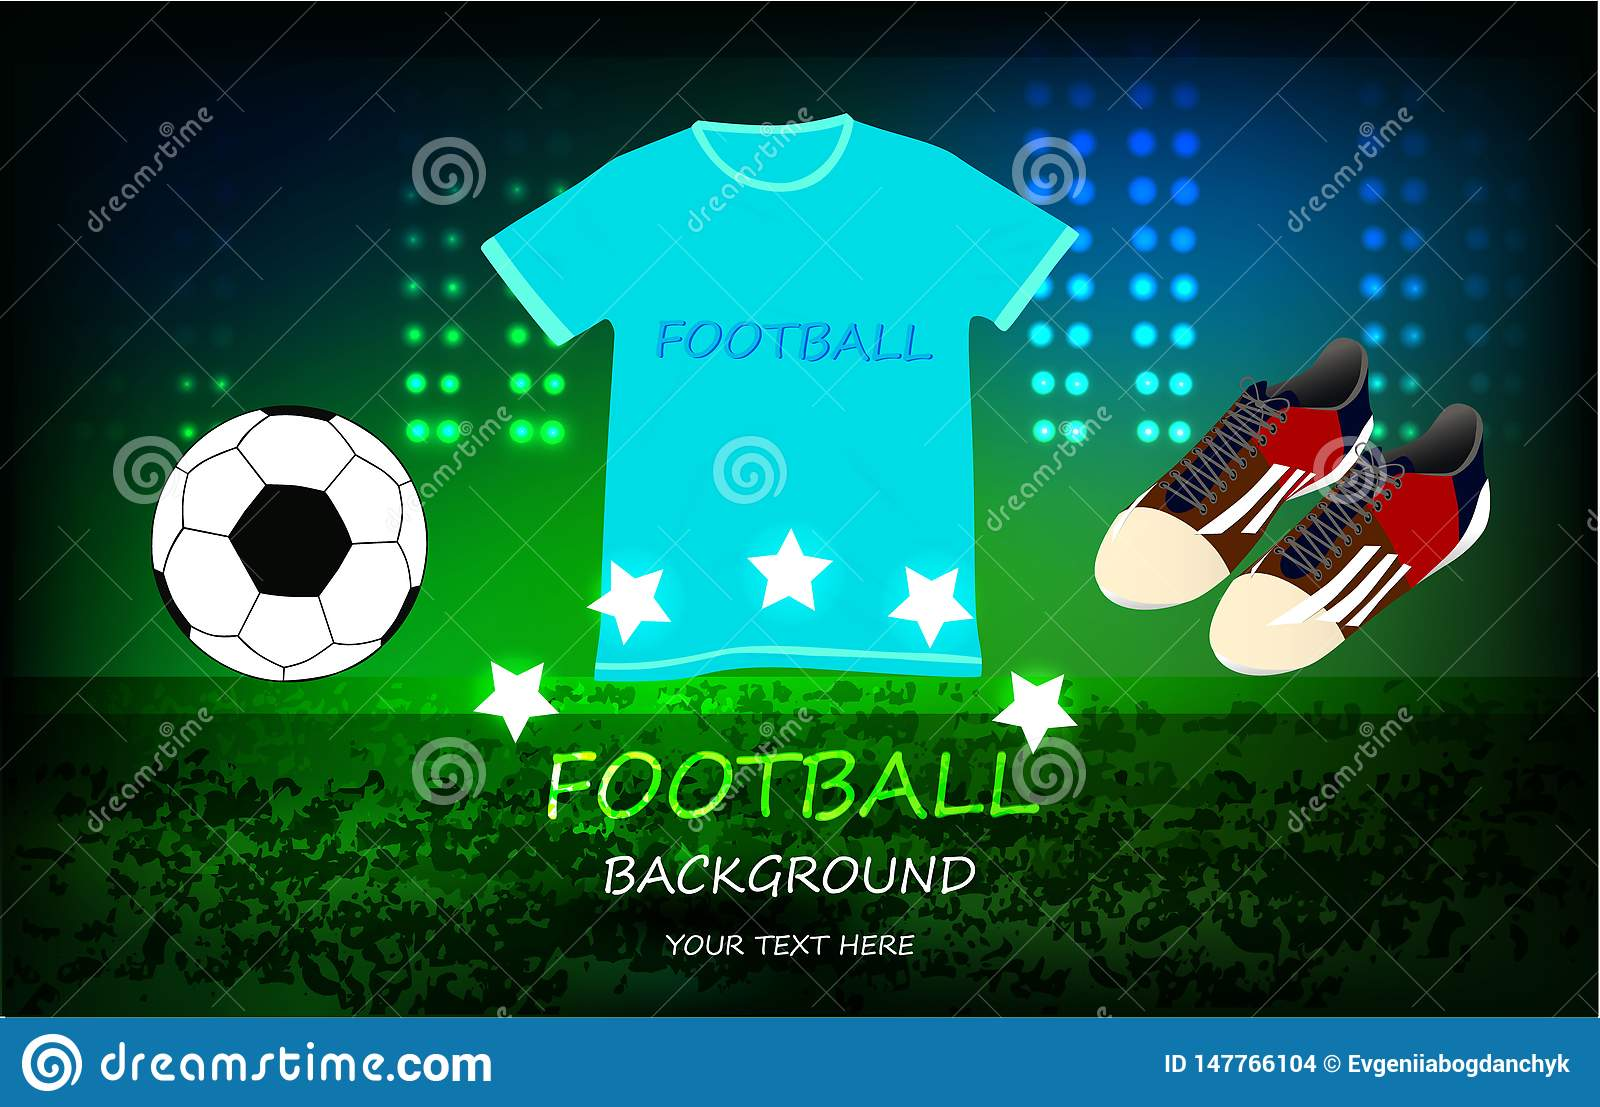 Football background, play arena bright sport ground